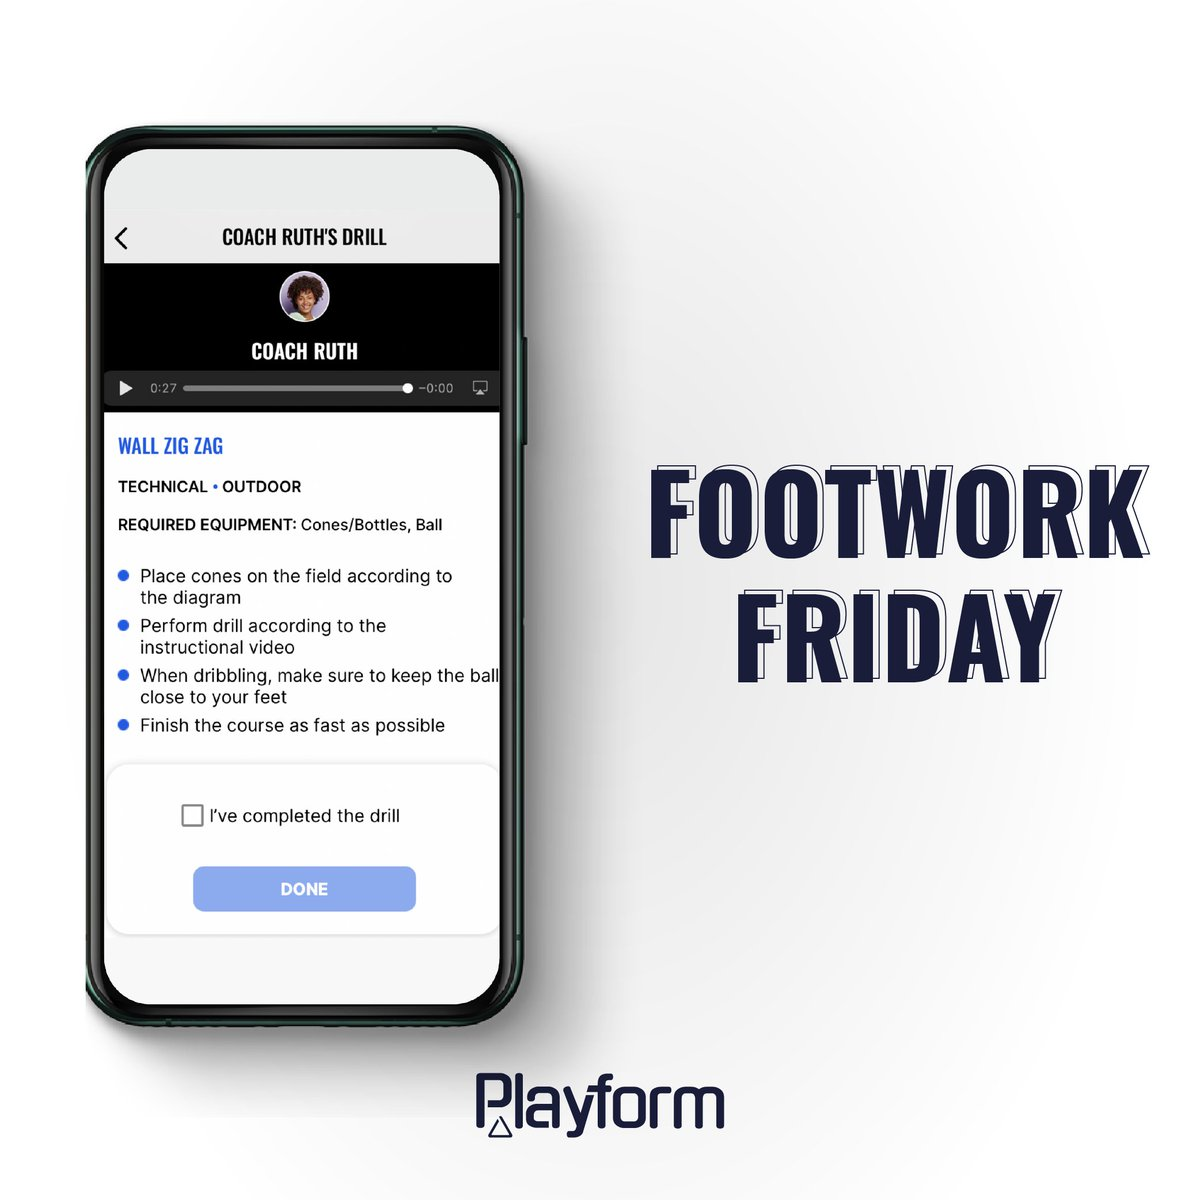 You keepin' on your toes this Footwork Friday?⚽👣🚀  #measure #train #win #Playform #soccer #sportstech #sportstechie #collab #inovate #play #tech #baller #soccerskills #soccerdrills #beautifulgame #youthsoccer #elite #academy #dribble #soccergame #passion #team #soccerteam